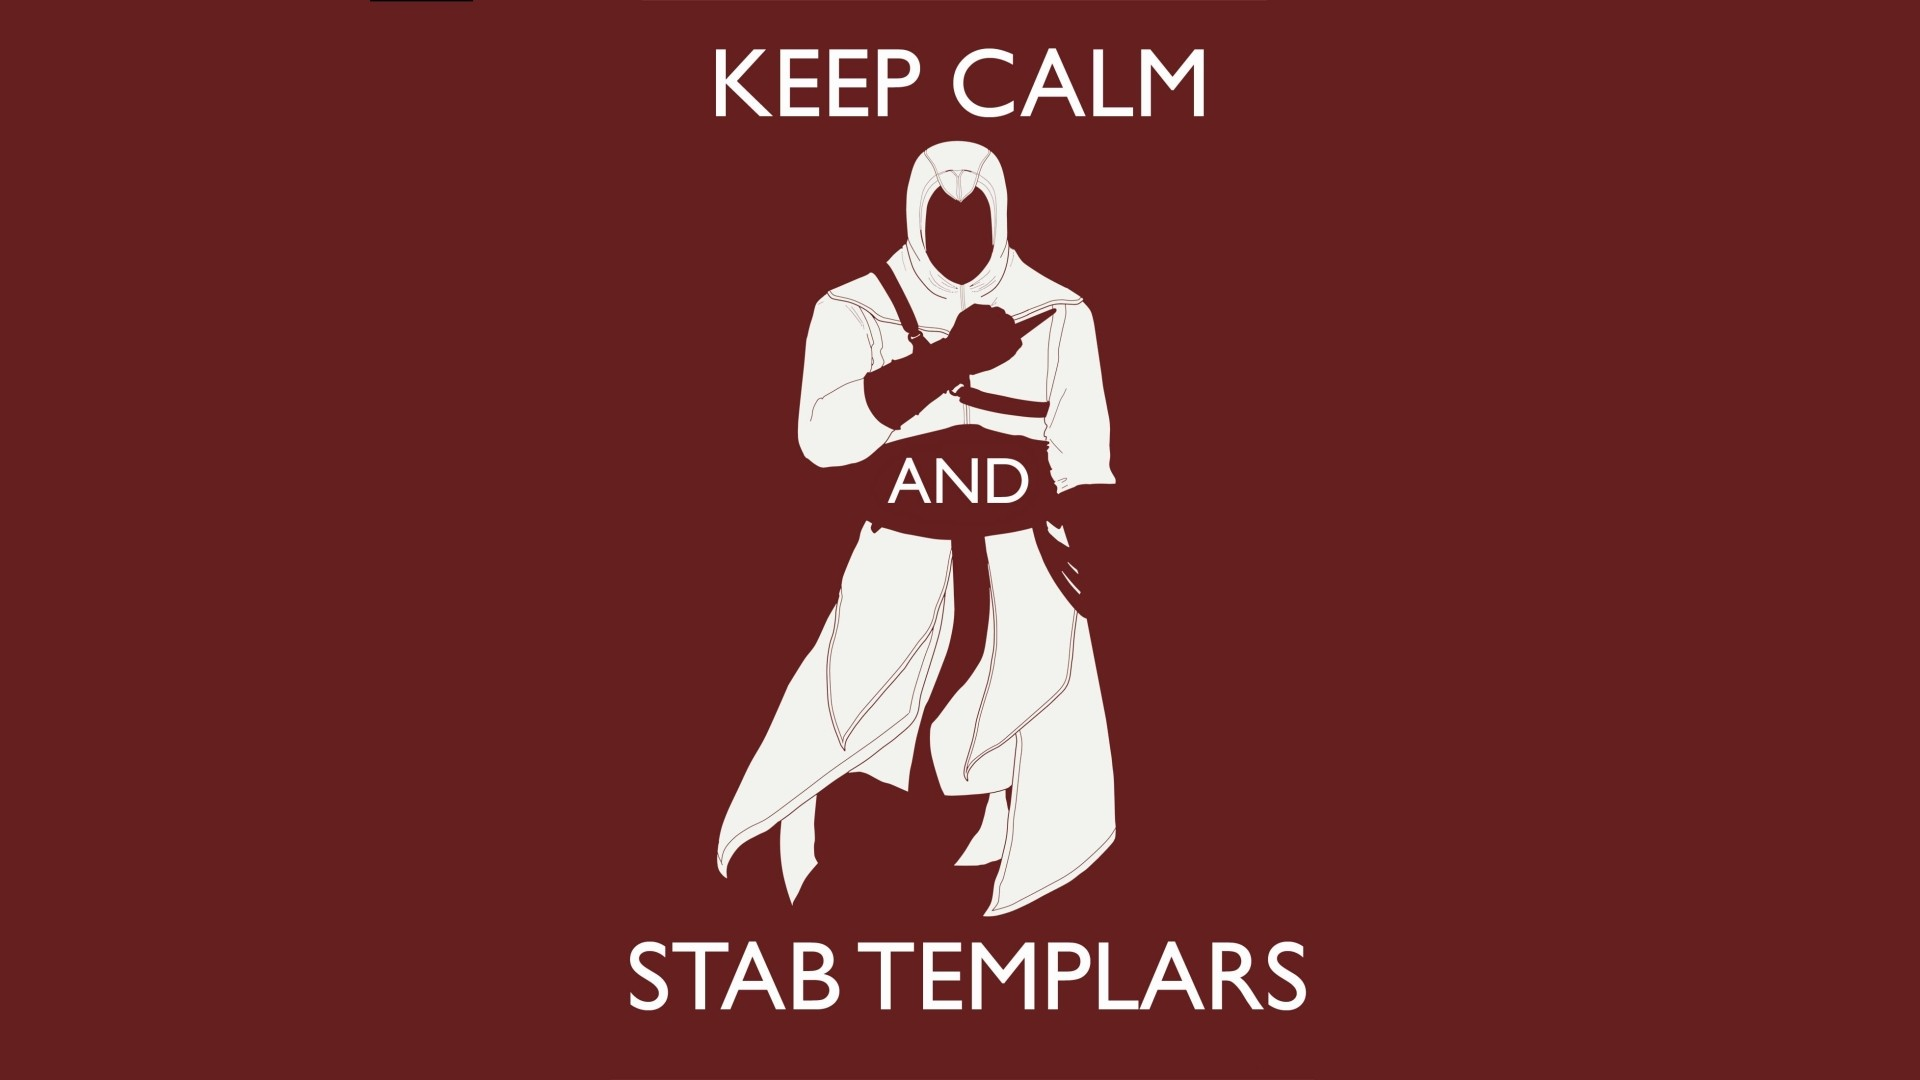 keep calm and stab templars assassins creed wallpaper shiftwallpapers 1920x1080